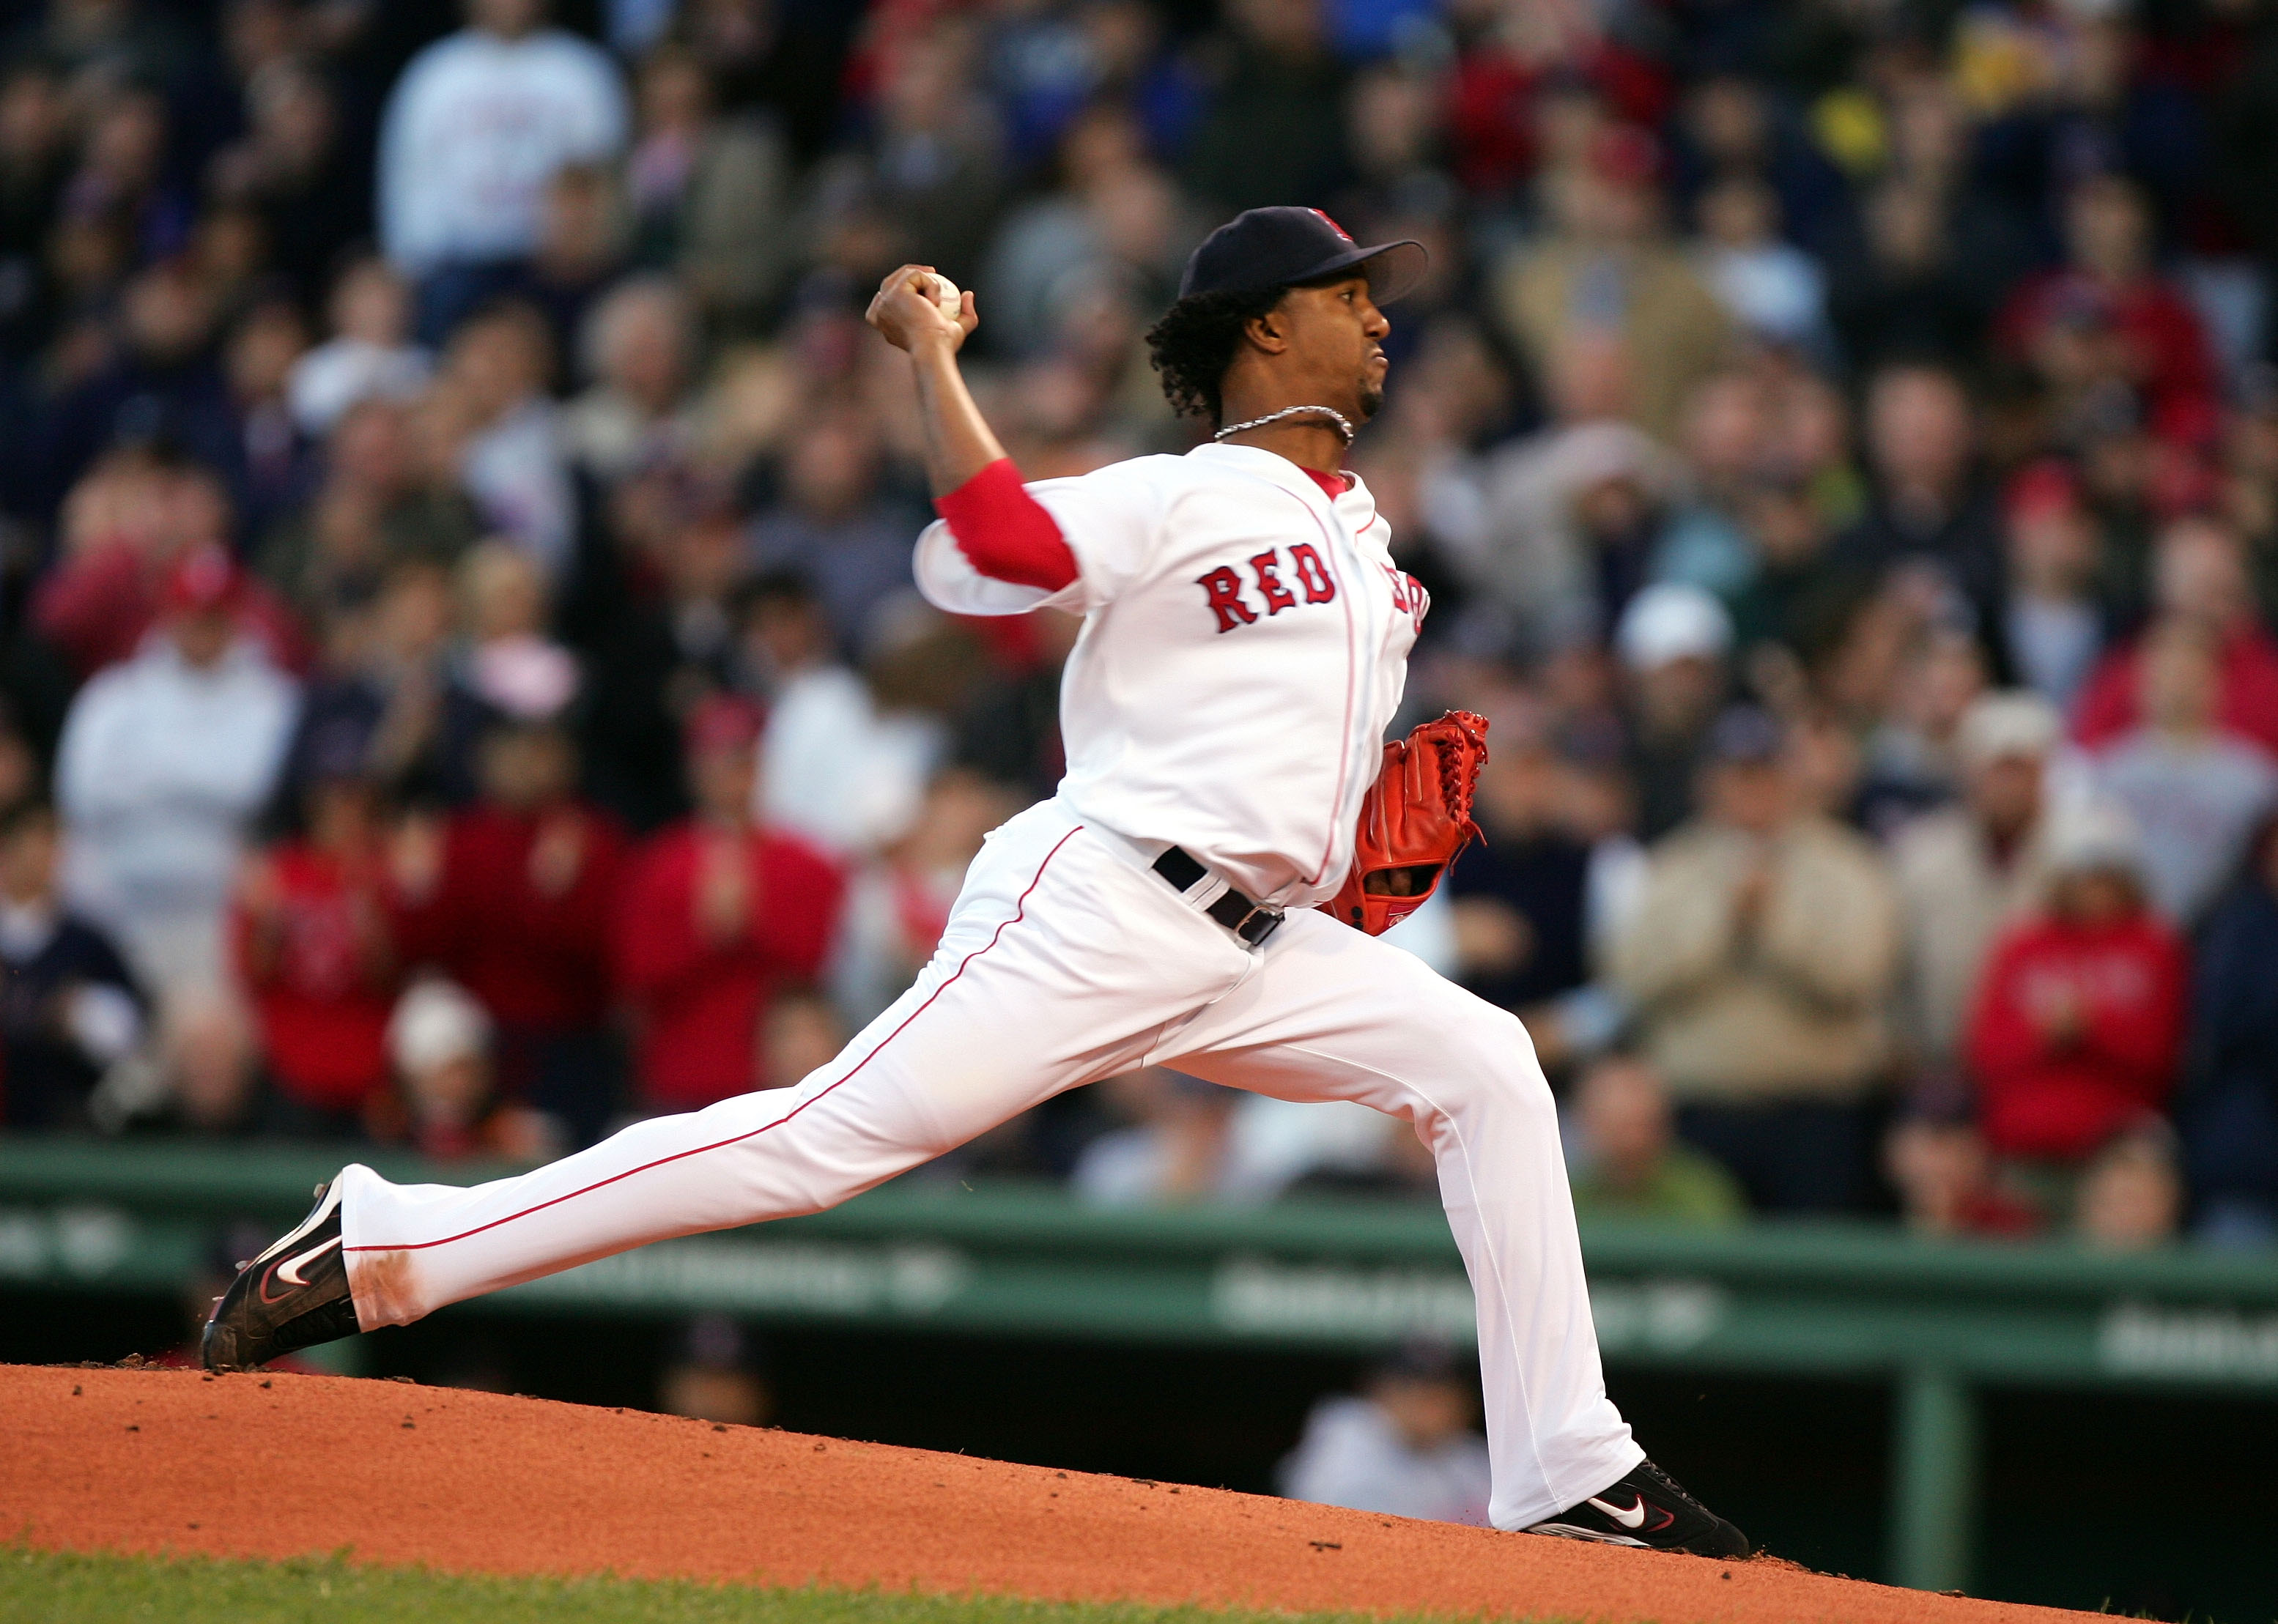 BOSTON - OCTOBER 18:  Pitcher Pedro Martinez #45 of the Boston Red Sox throws a pitch against the New York Yankees in the first inning during game five of the American League Championship Series on October 18, 2004 at Fenway Park in Boston, Massachusetts.